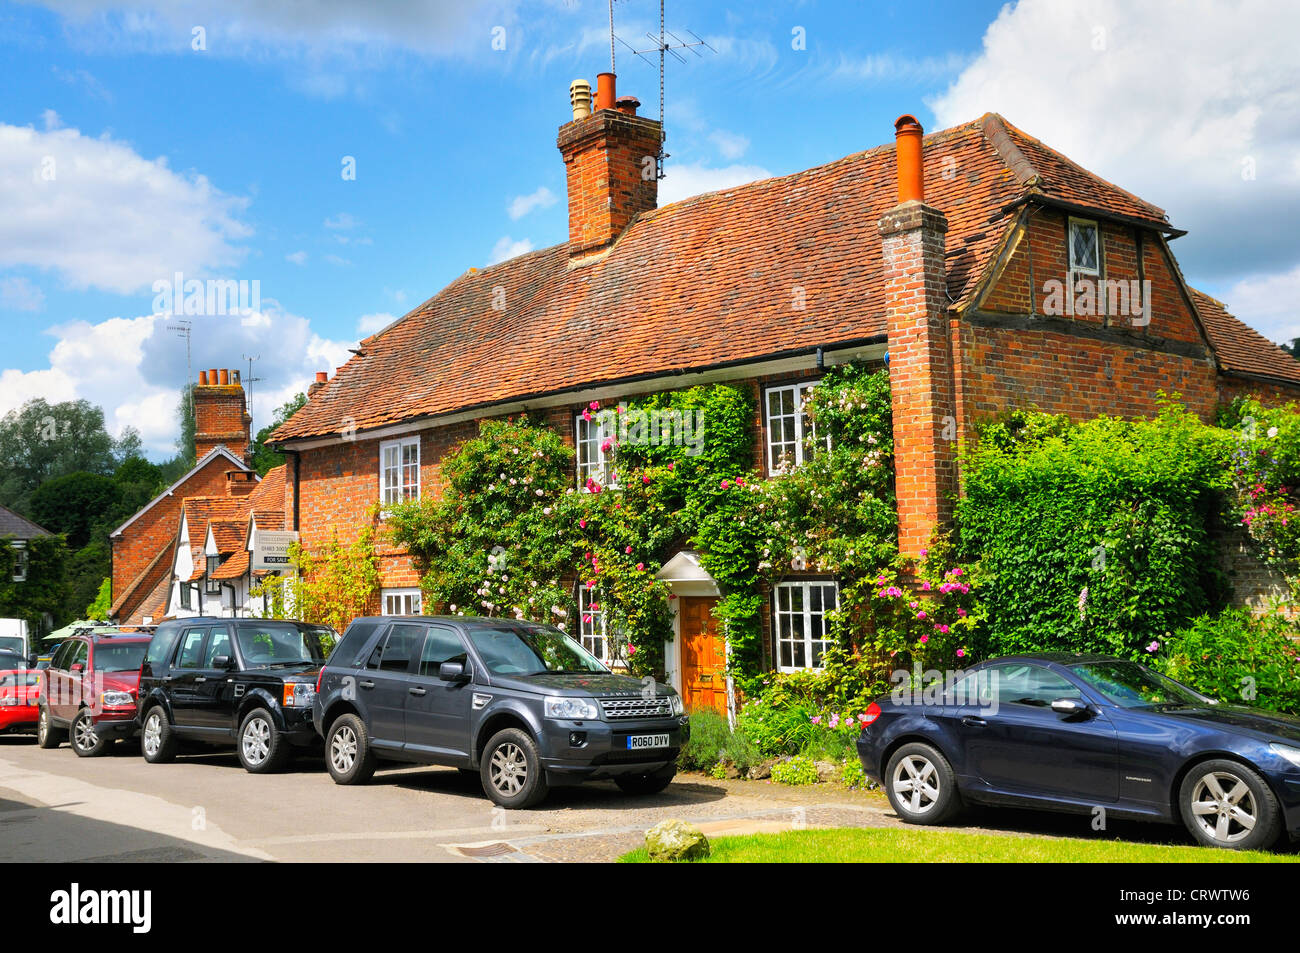 Pretty cottages in the village of Shere in Surrey, England, UK - Stock Image